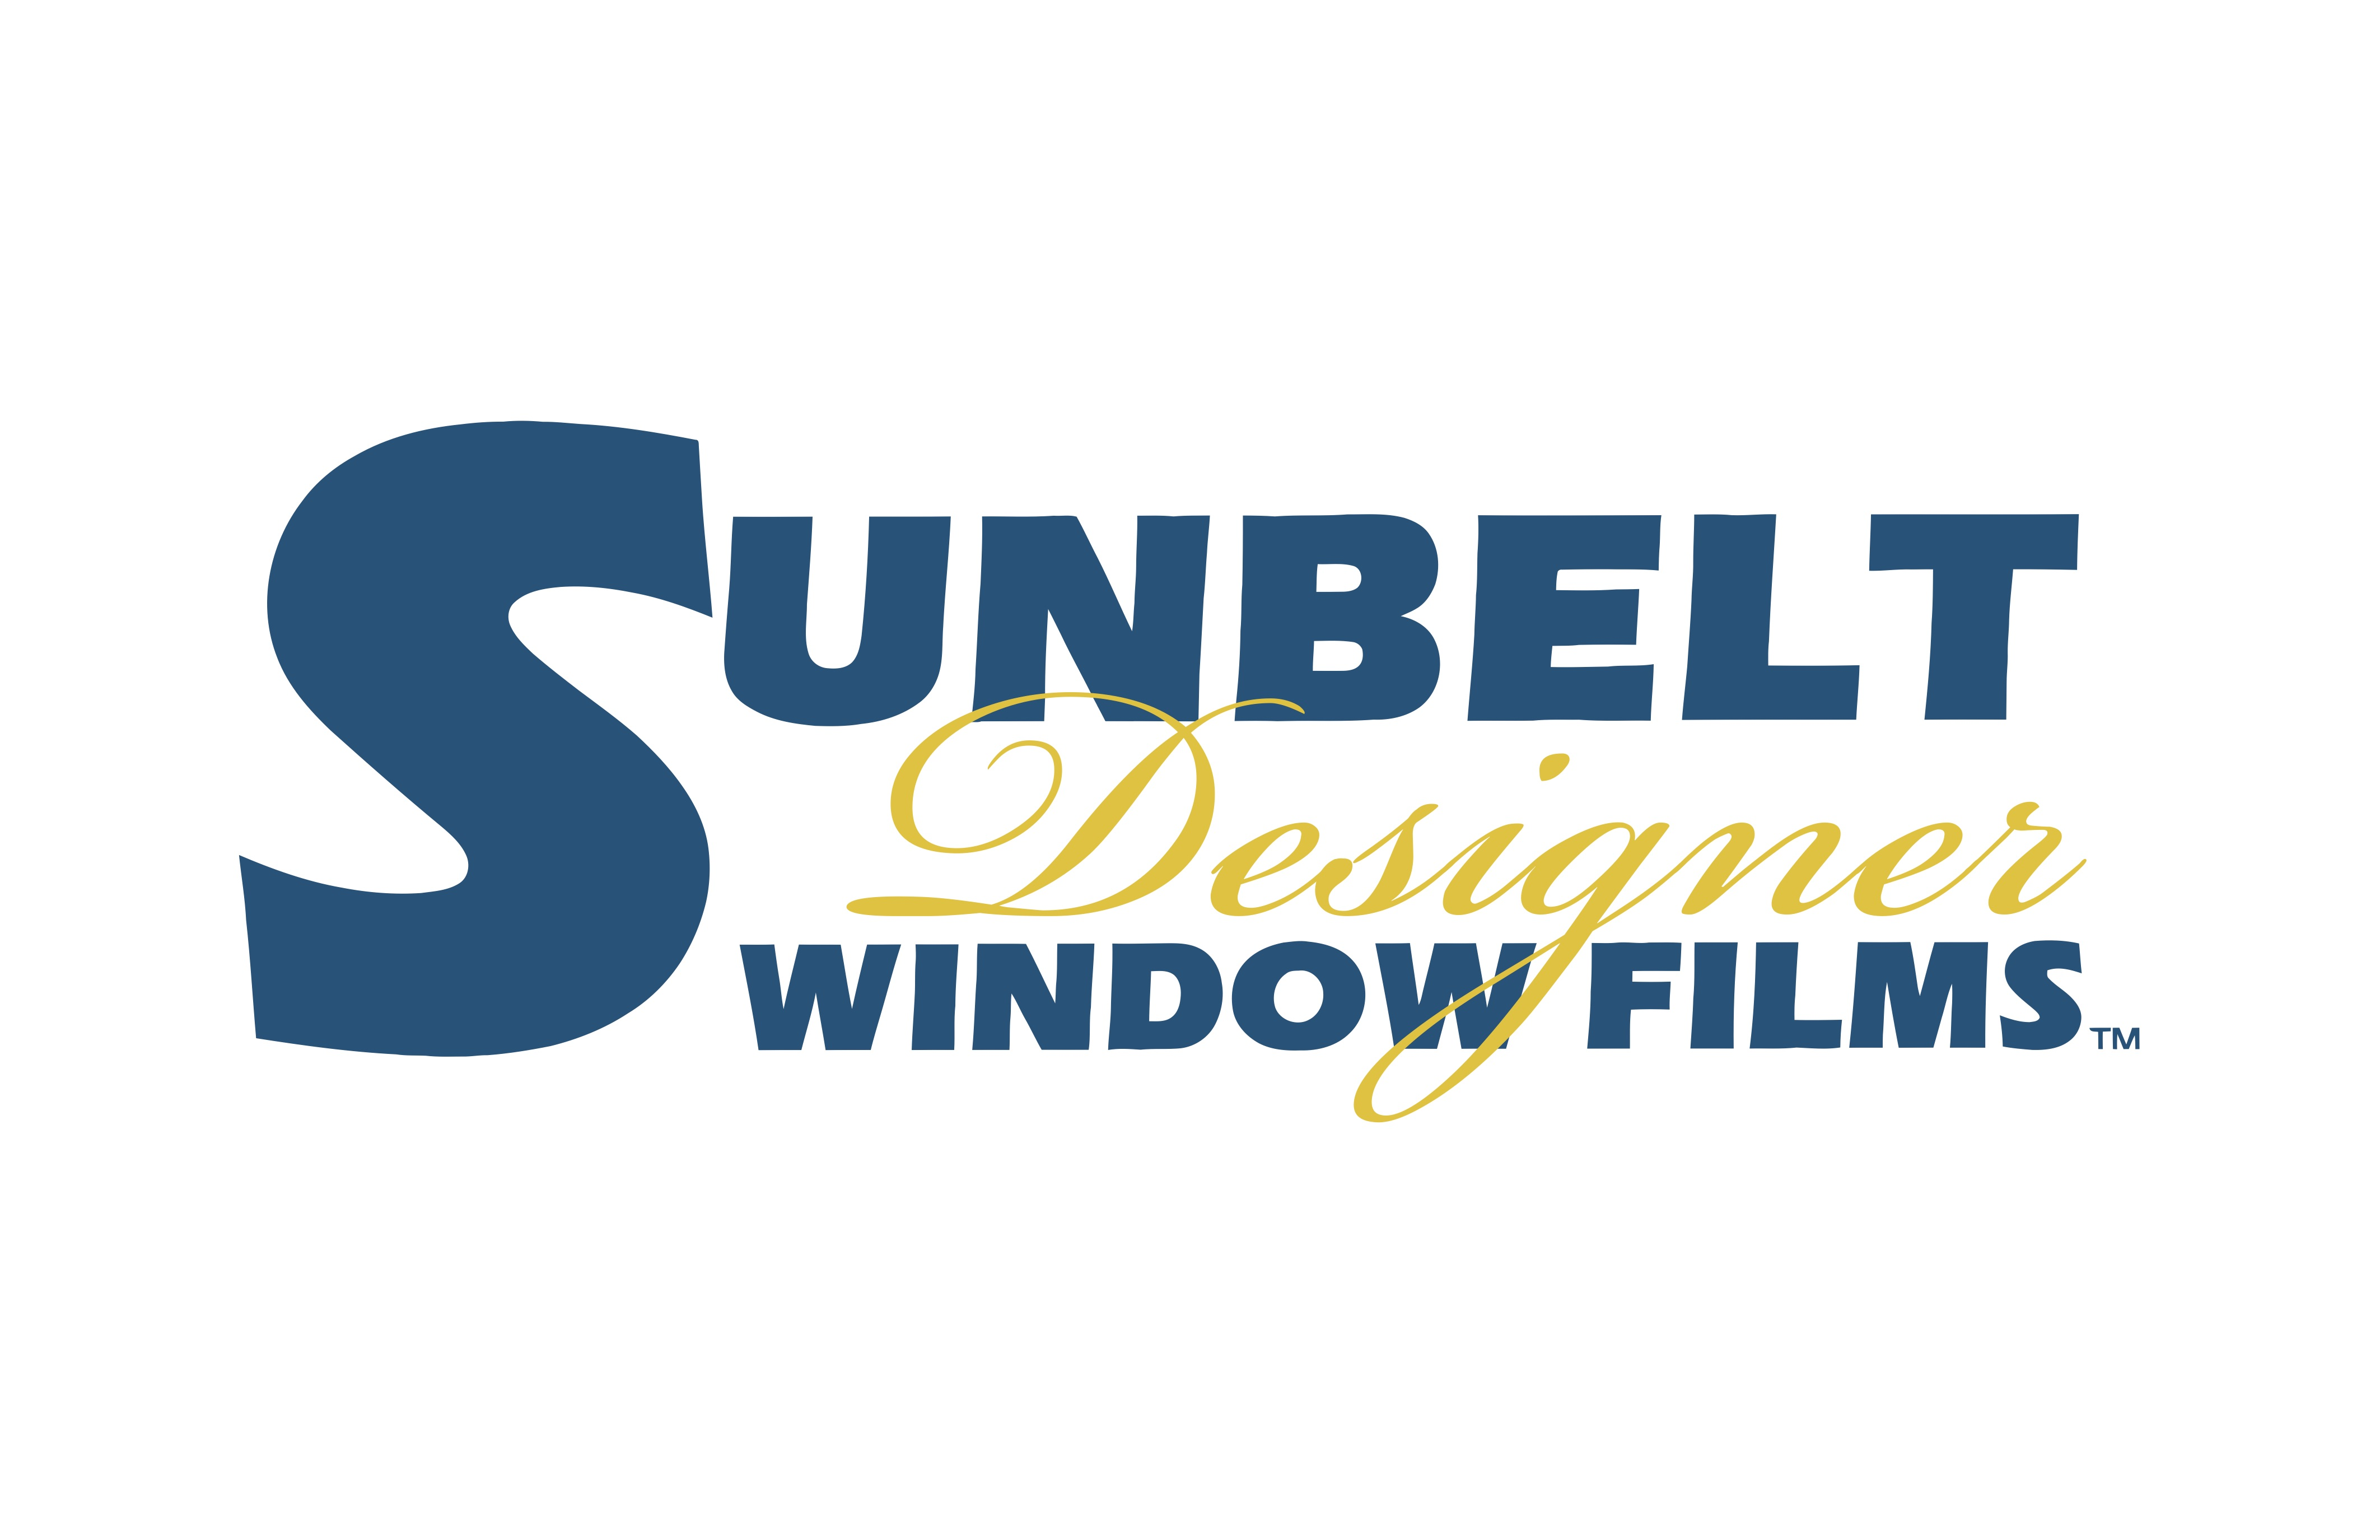 Sunbelt Designer Window Films